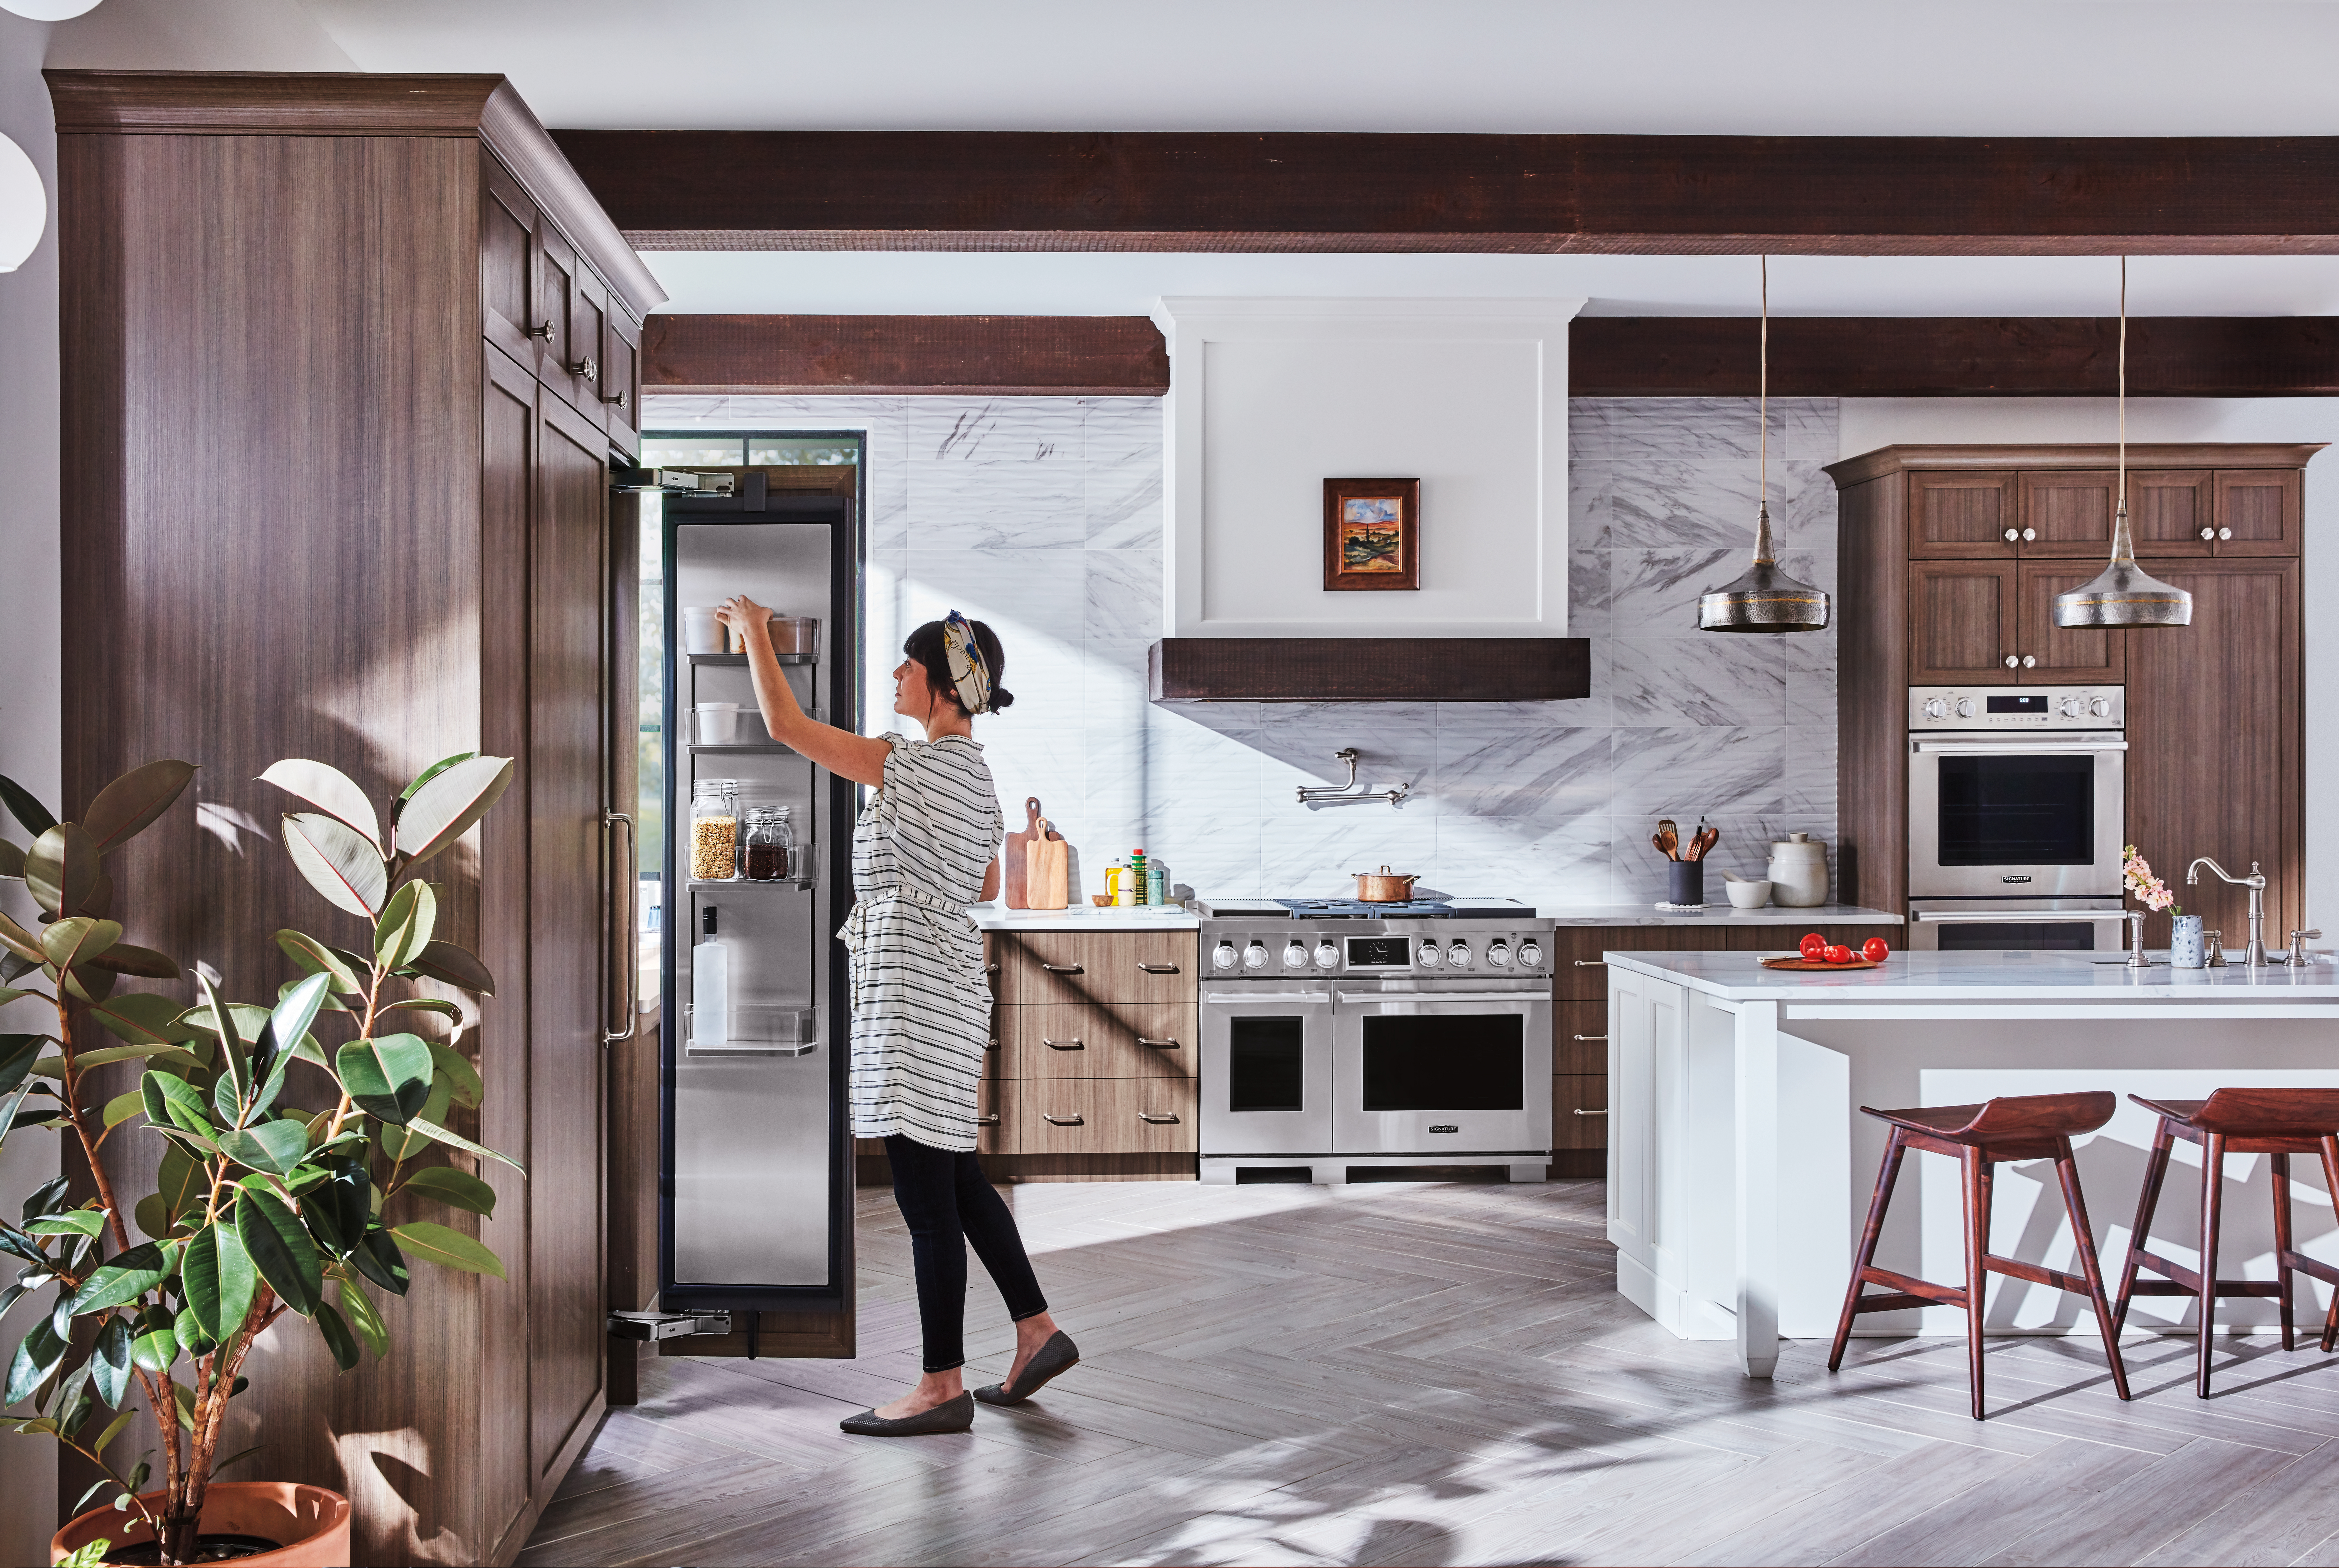 SKS Country Kitchen Lifestyle 15